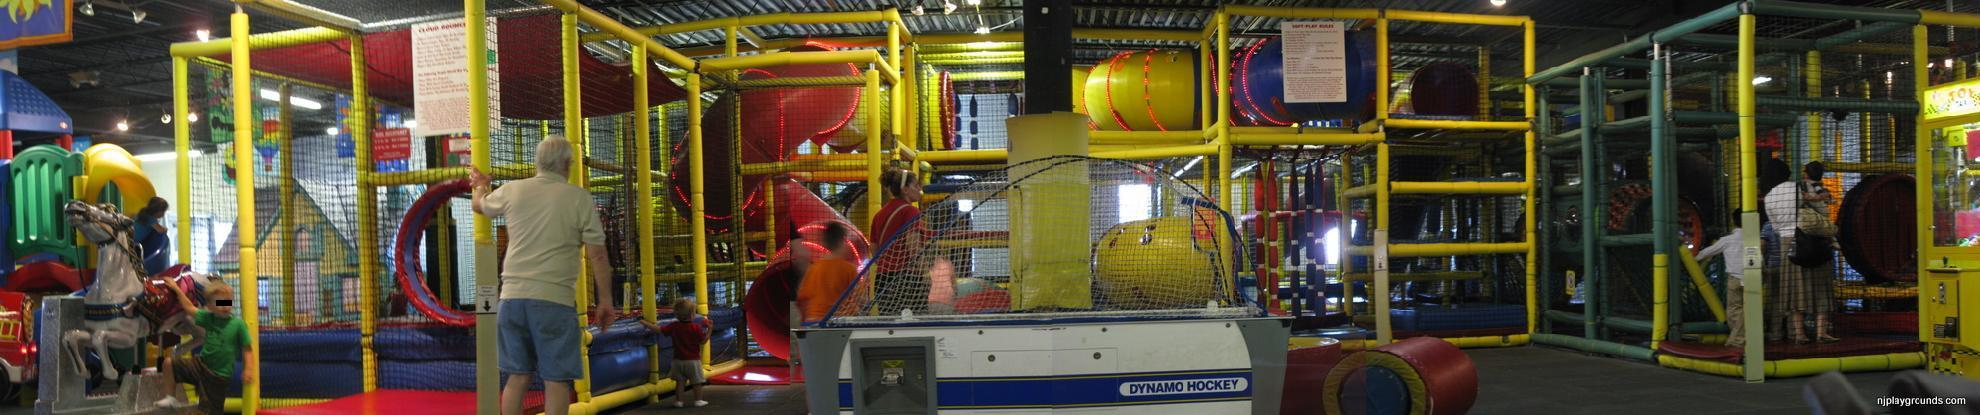 funtime junction in fairfield nj « Your complete guide to NJ Playgrounds